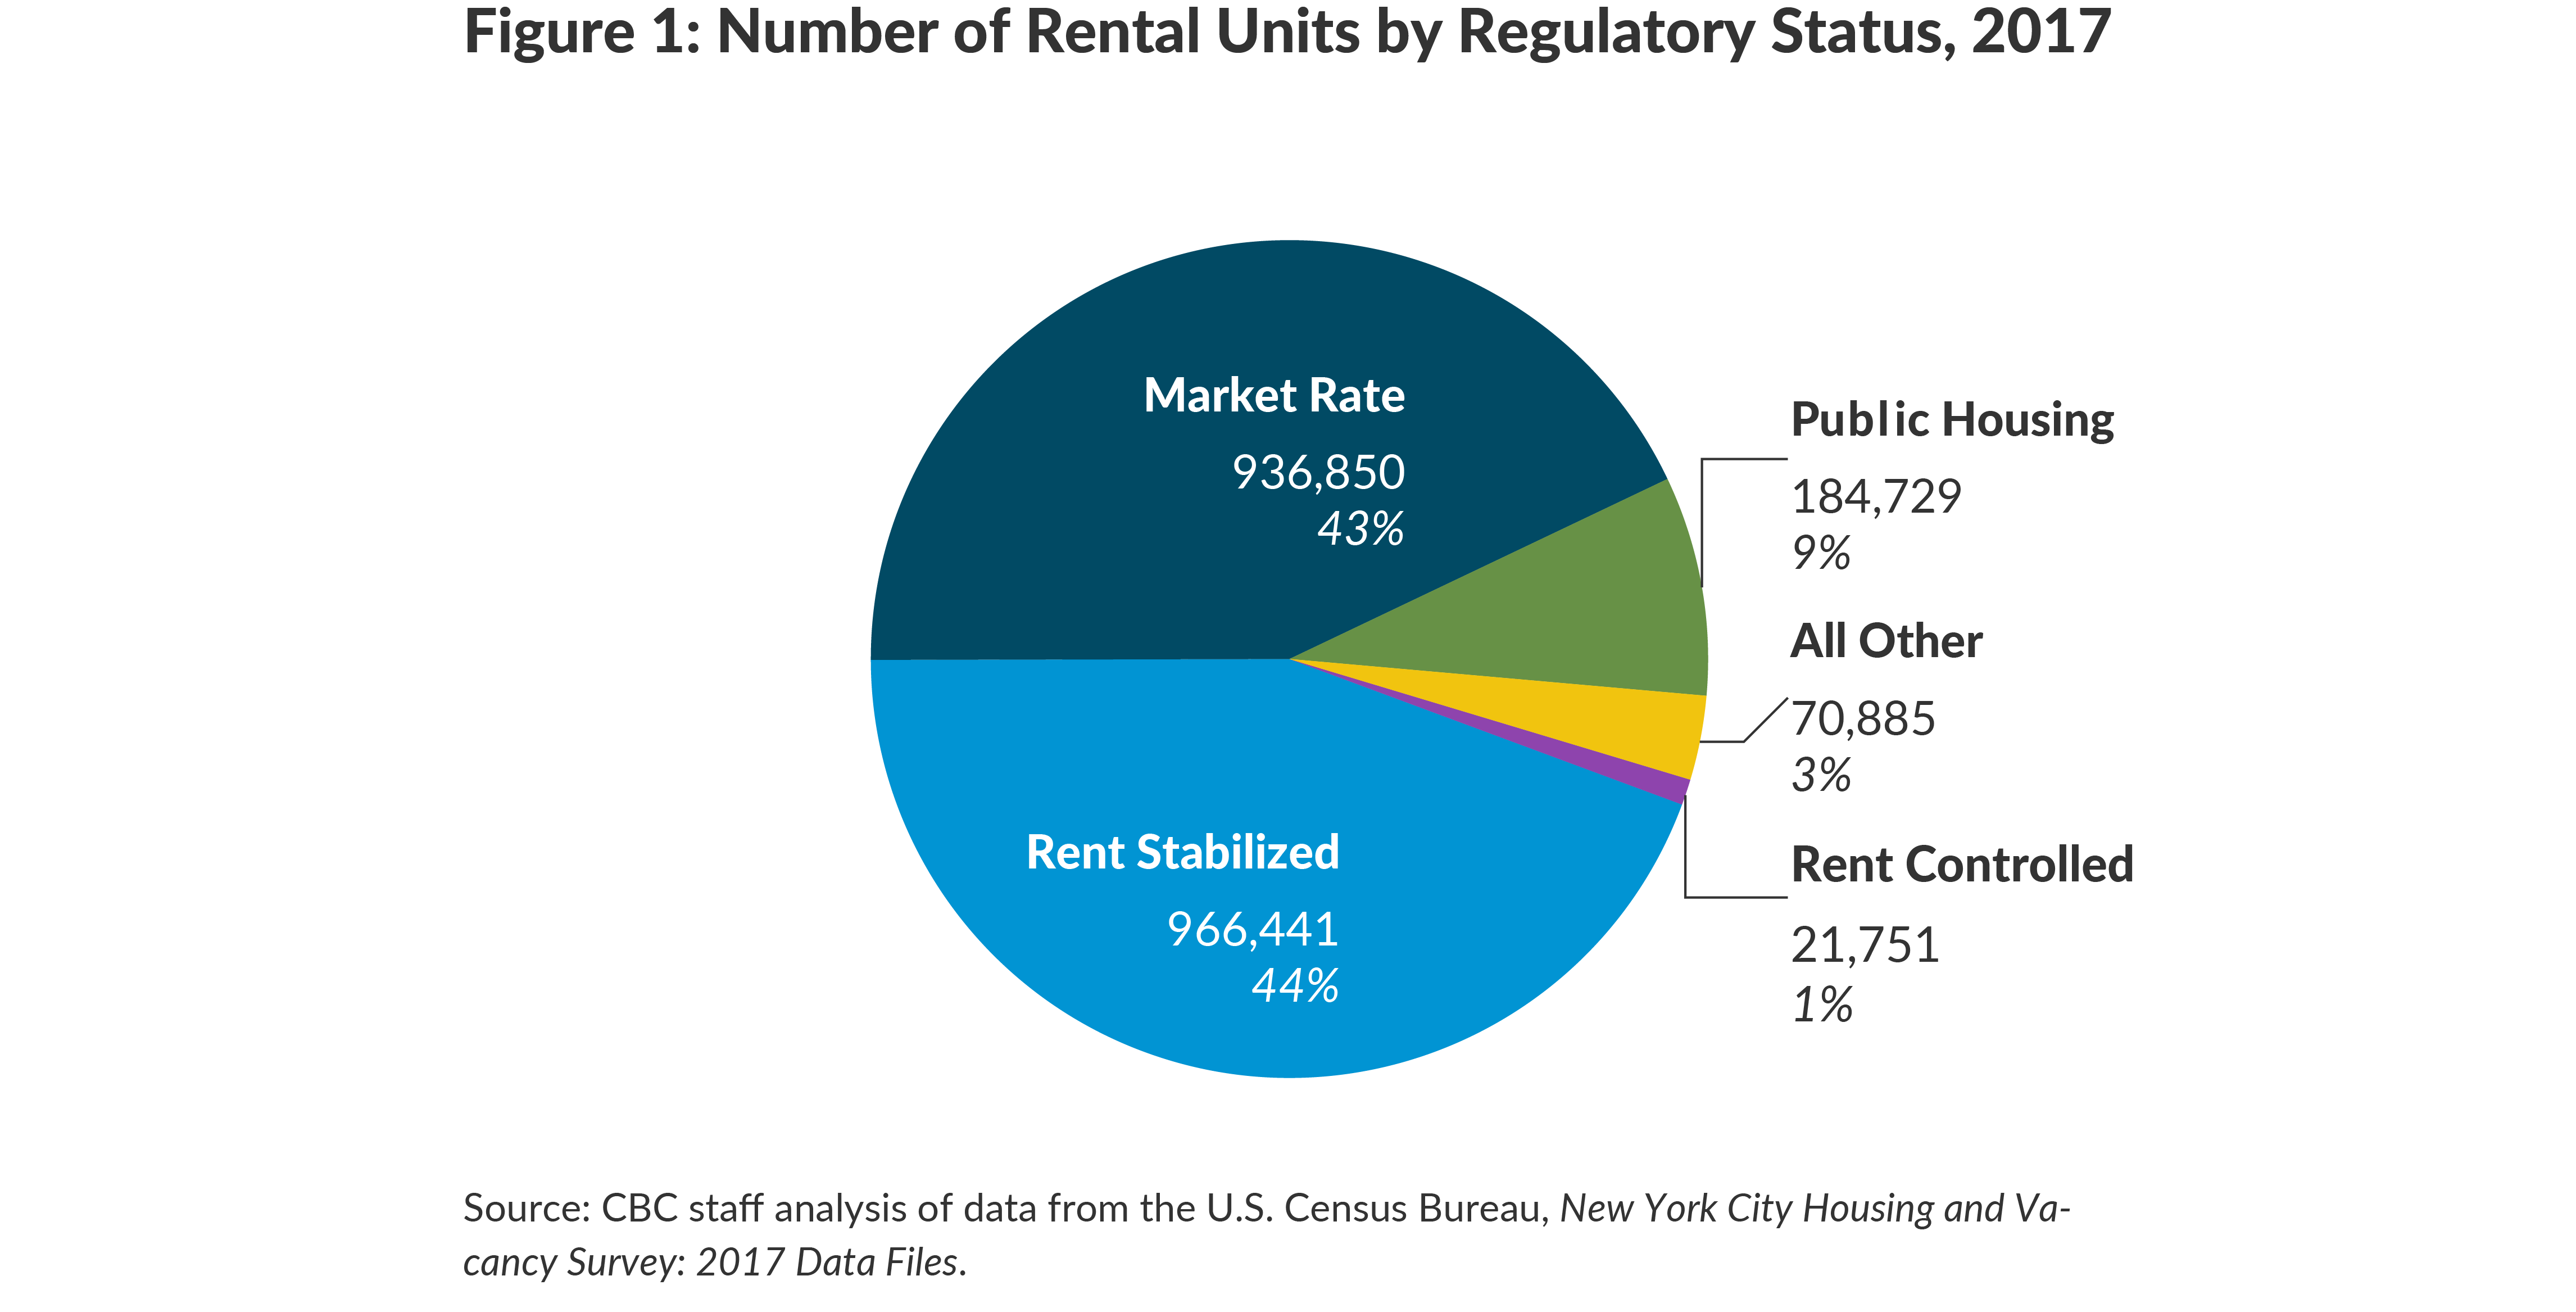 Figure 1: Number of Rental Units by Regulatory Status, 2017